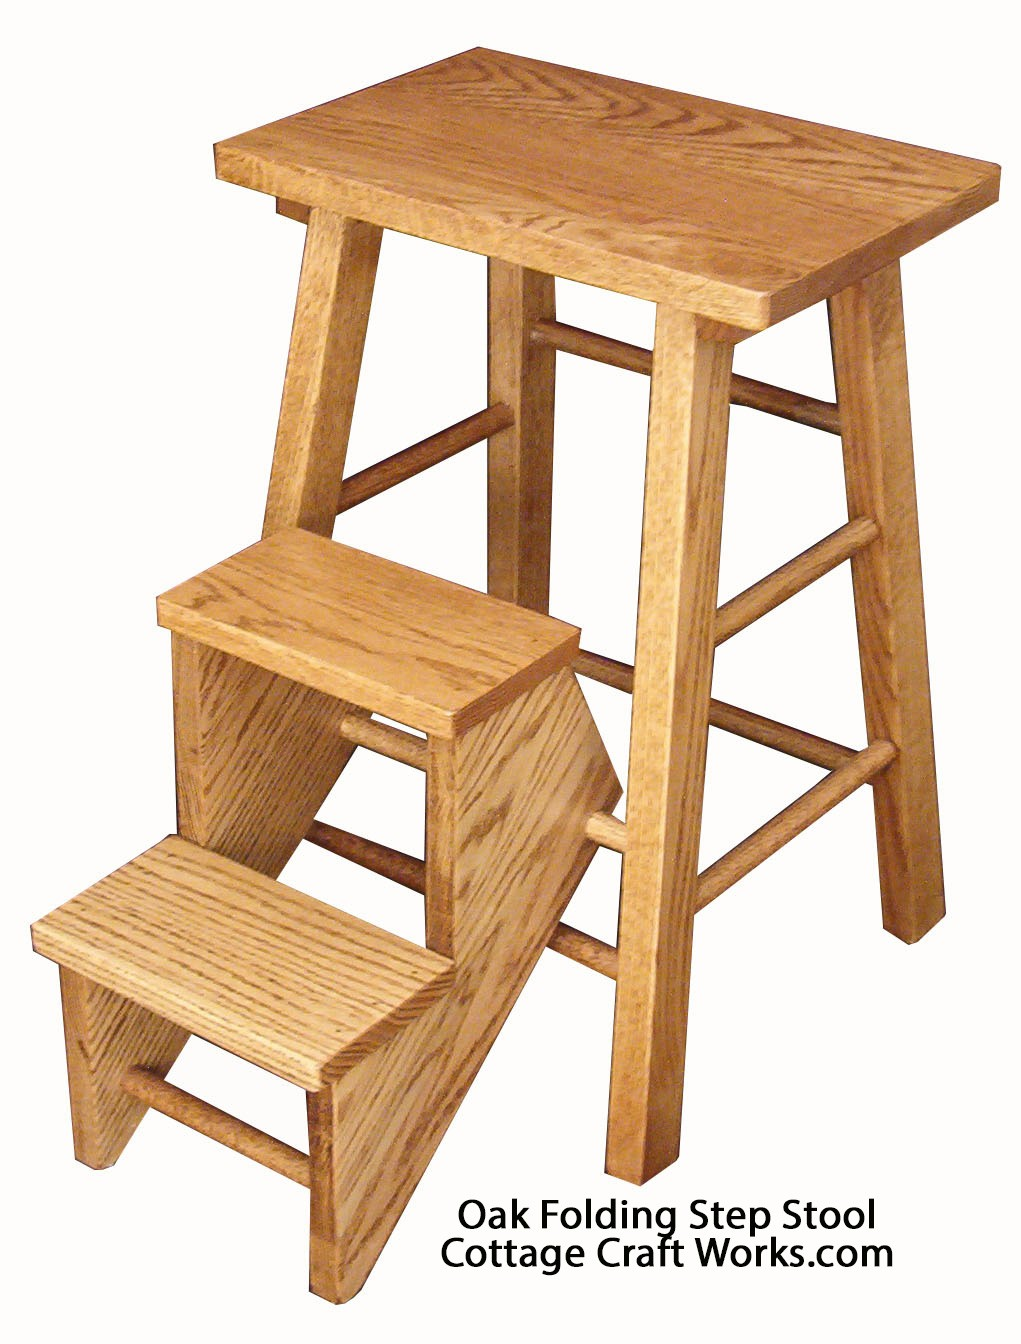 Sensational Wooden Kitchen Step Stool Chair Lj76 Advancedmassagebysara Frankydiablos Diy Chair Ideas Frankydiabloscom